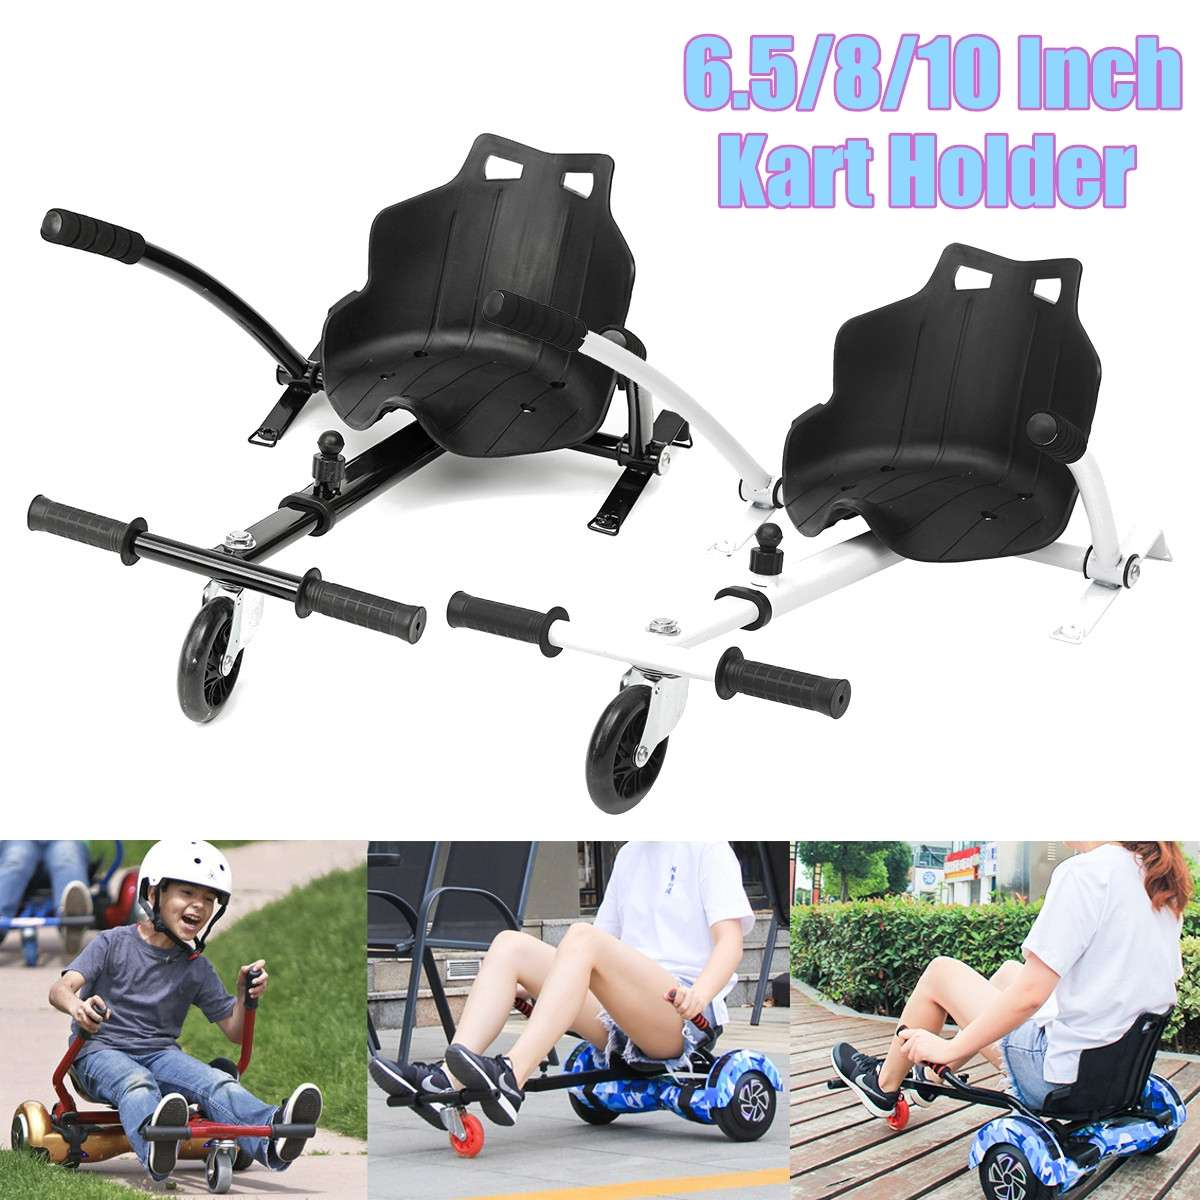 Hoverboard Go Kart Hover Cart Holder Seat Stand Rack for 6.5 810 Balance Scooter Universal Scooter Accessories Adjustable